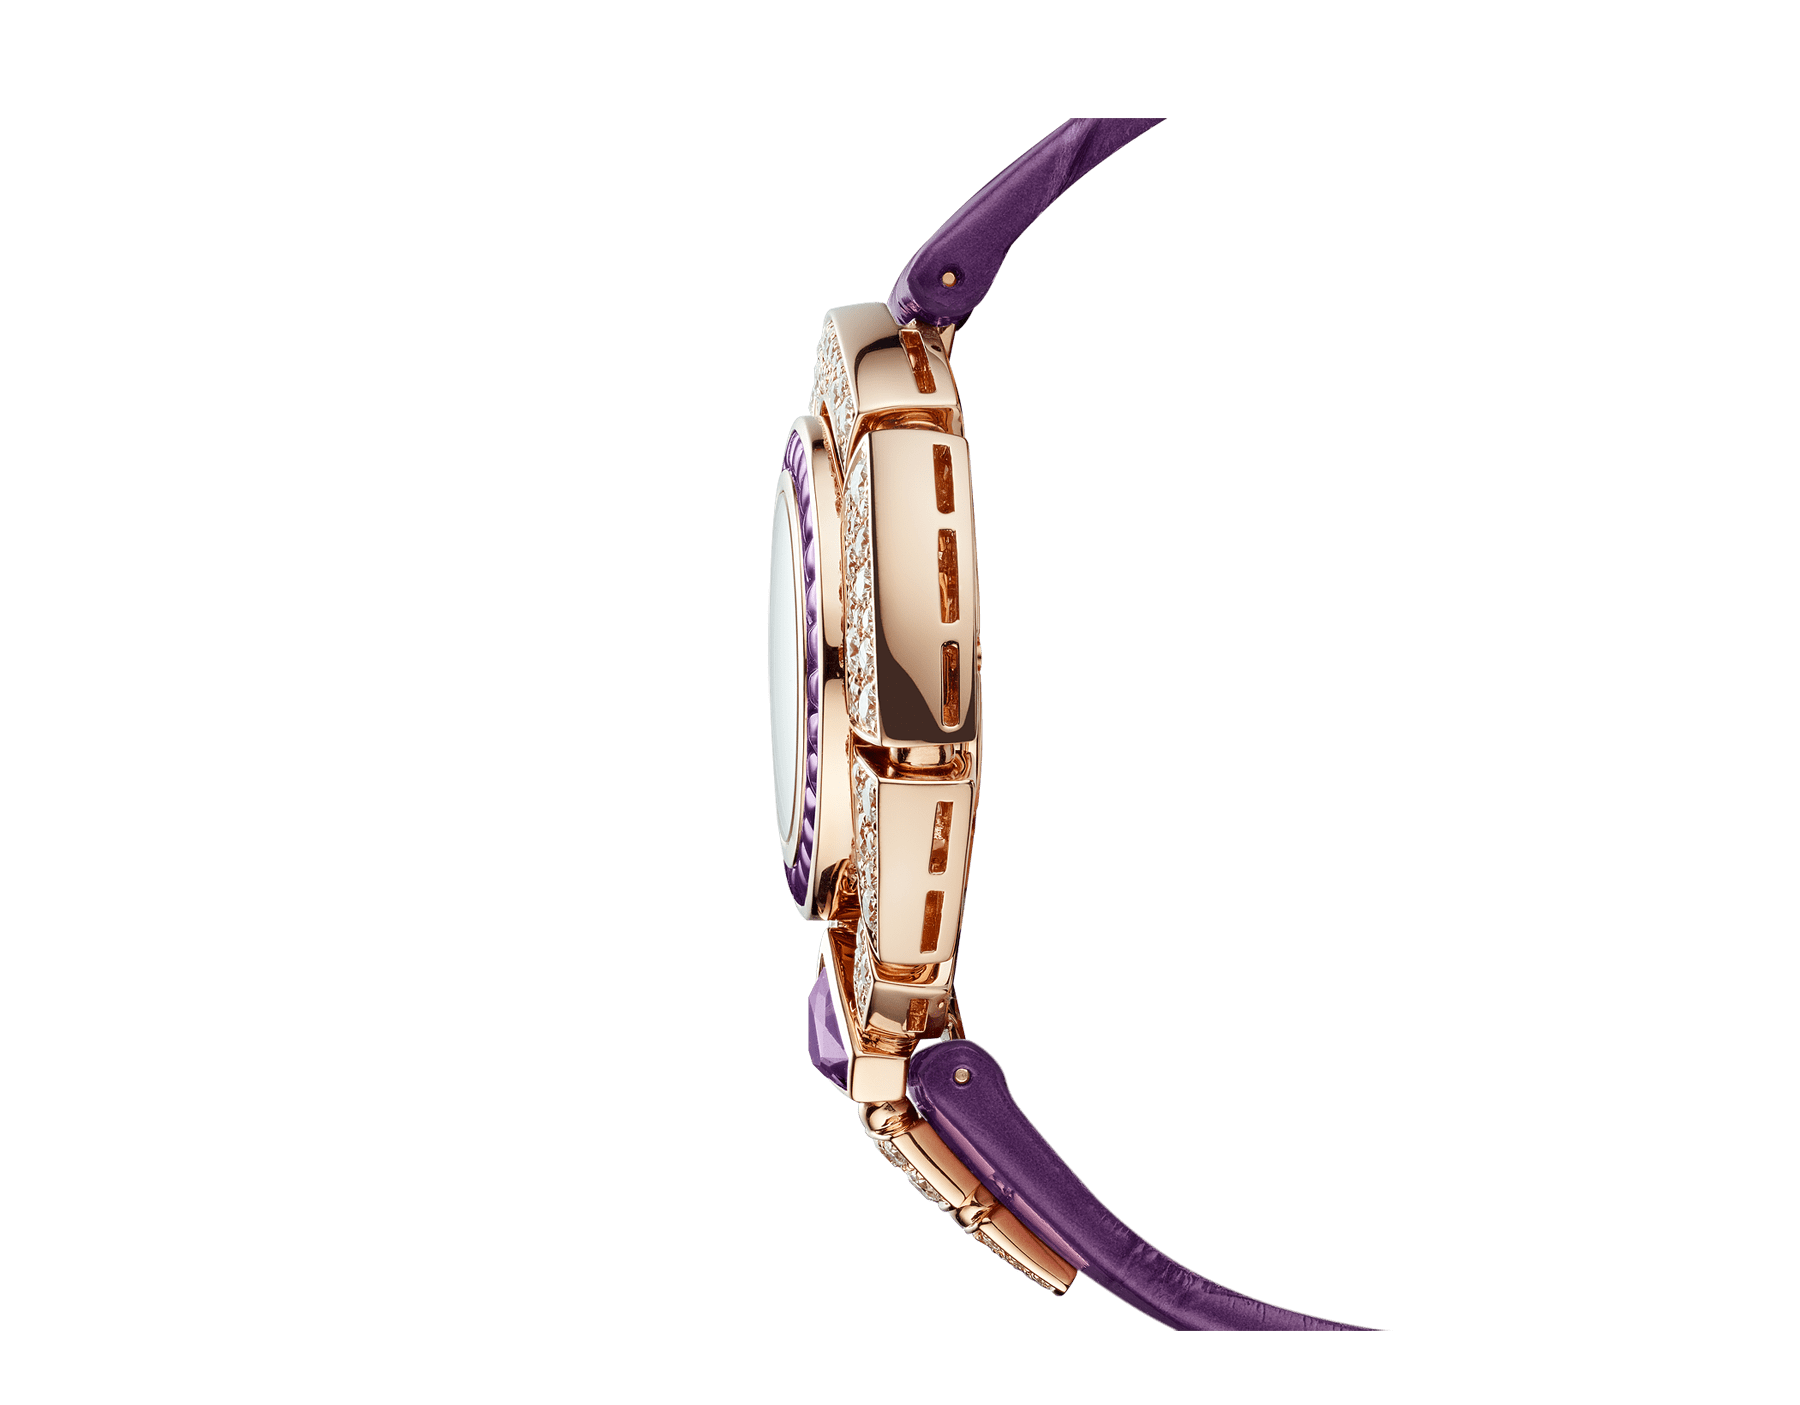 Serpenti Incantati watch with 18 kt rose gold case set with round brilliant-cut diamonds and a fancy-shaped amethyst, 18 kt rose gold bezel set with buff-cut amethysts, snow pavé dial and purple alligator bracelet 103125 image 3